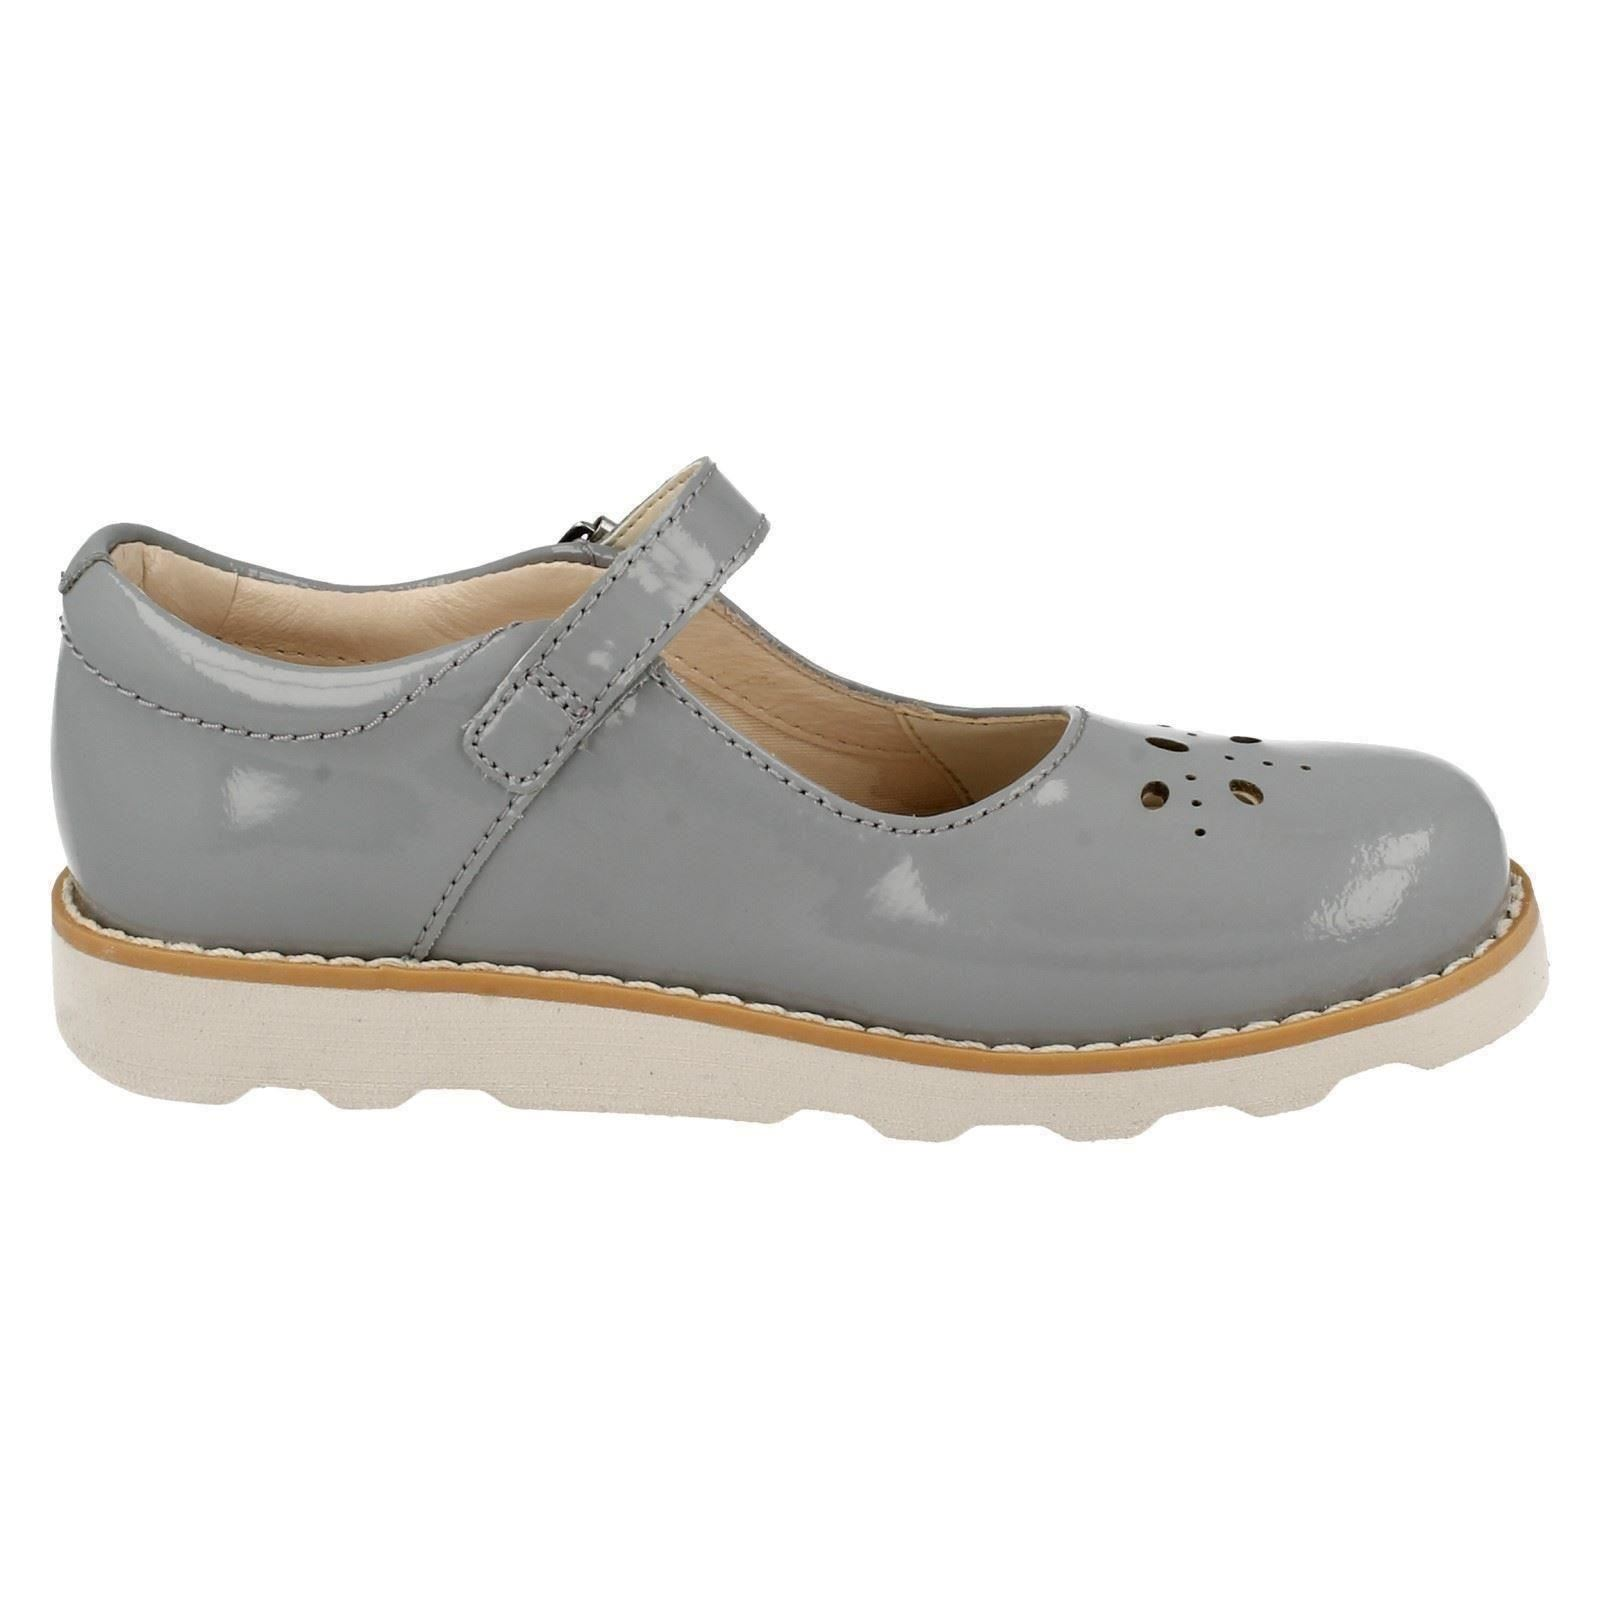 Girls Clarks Shoes Crown Posy